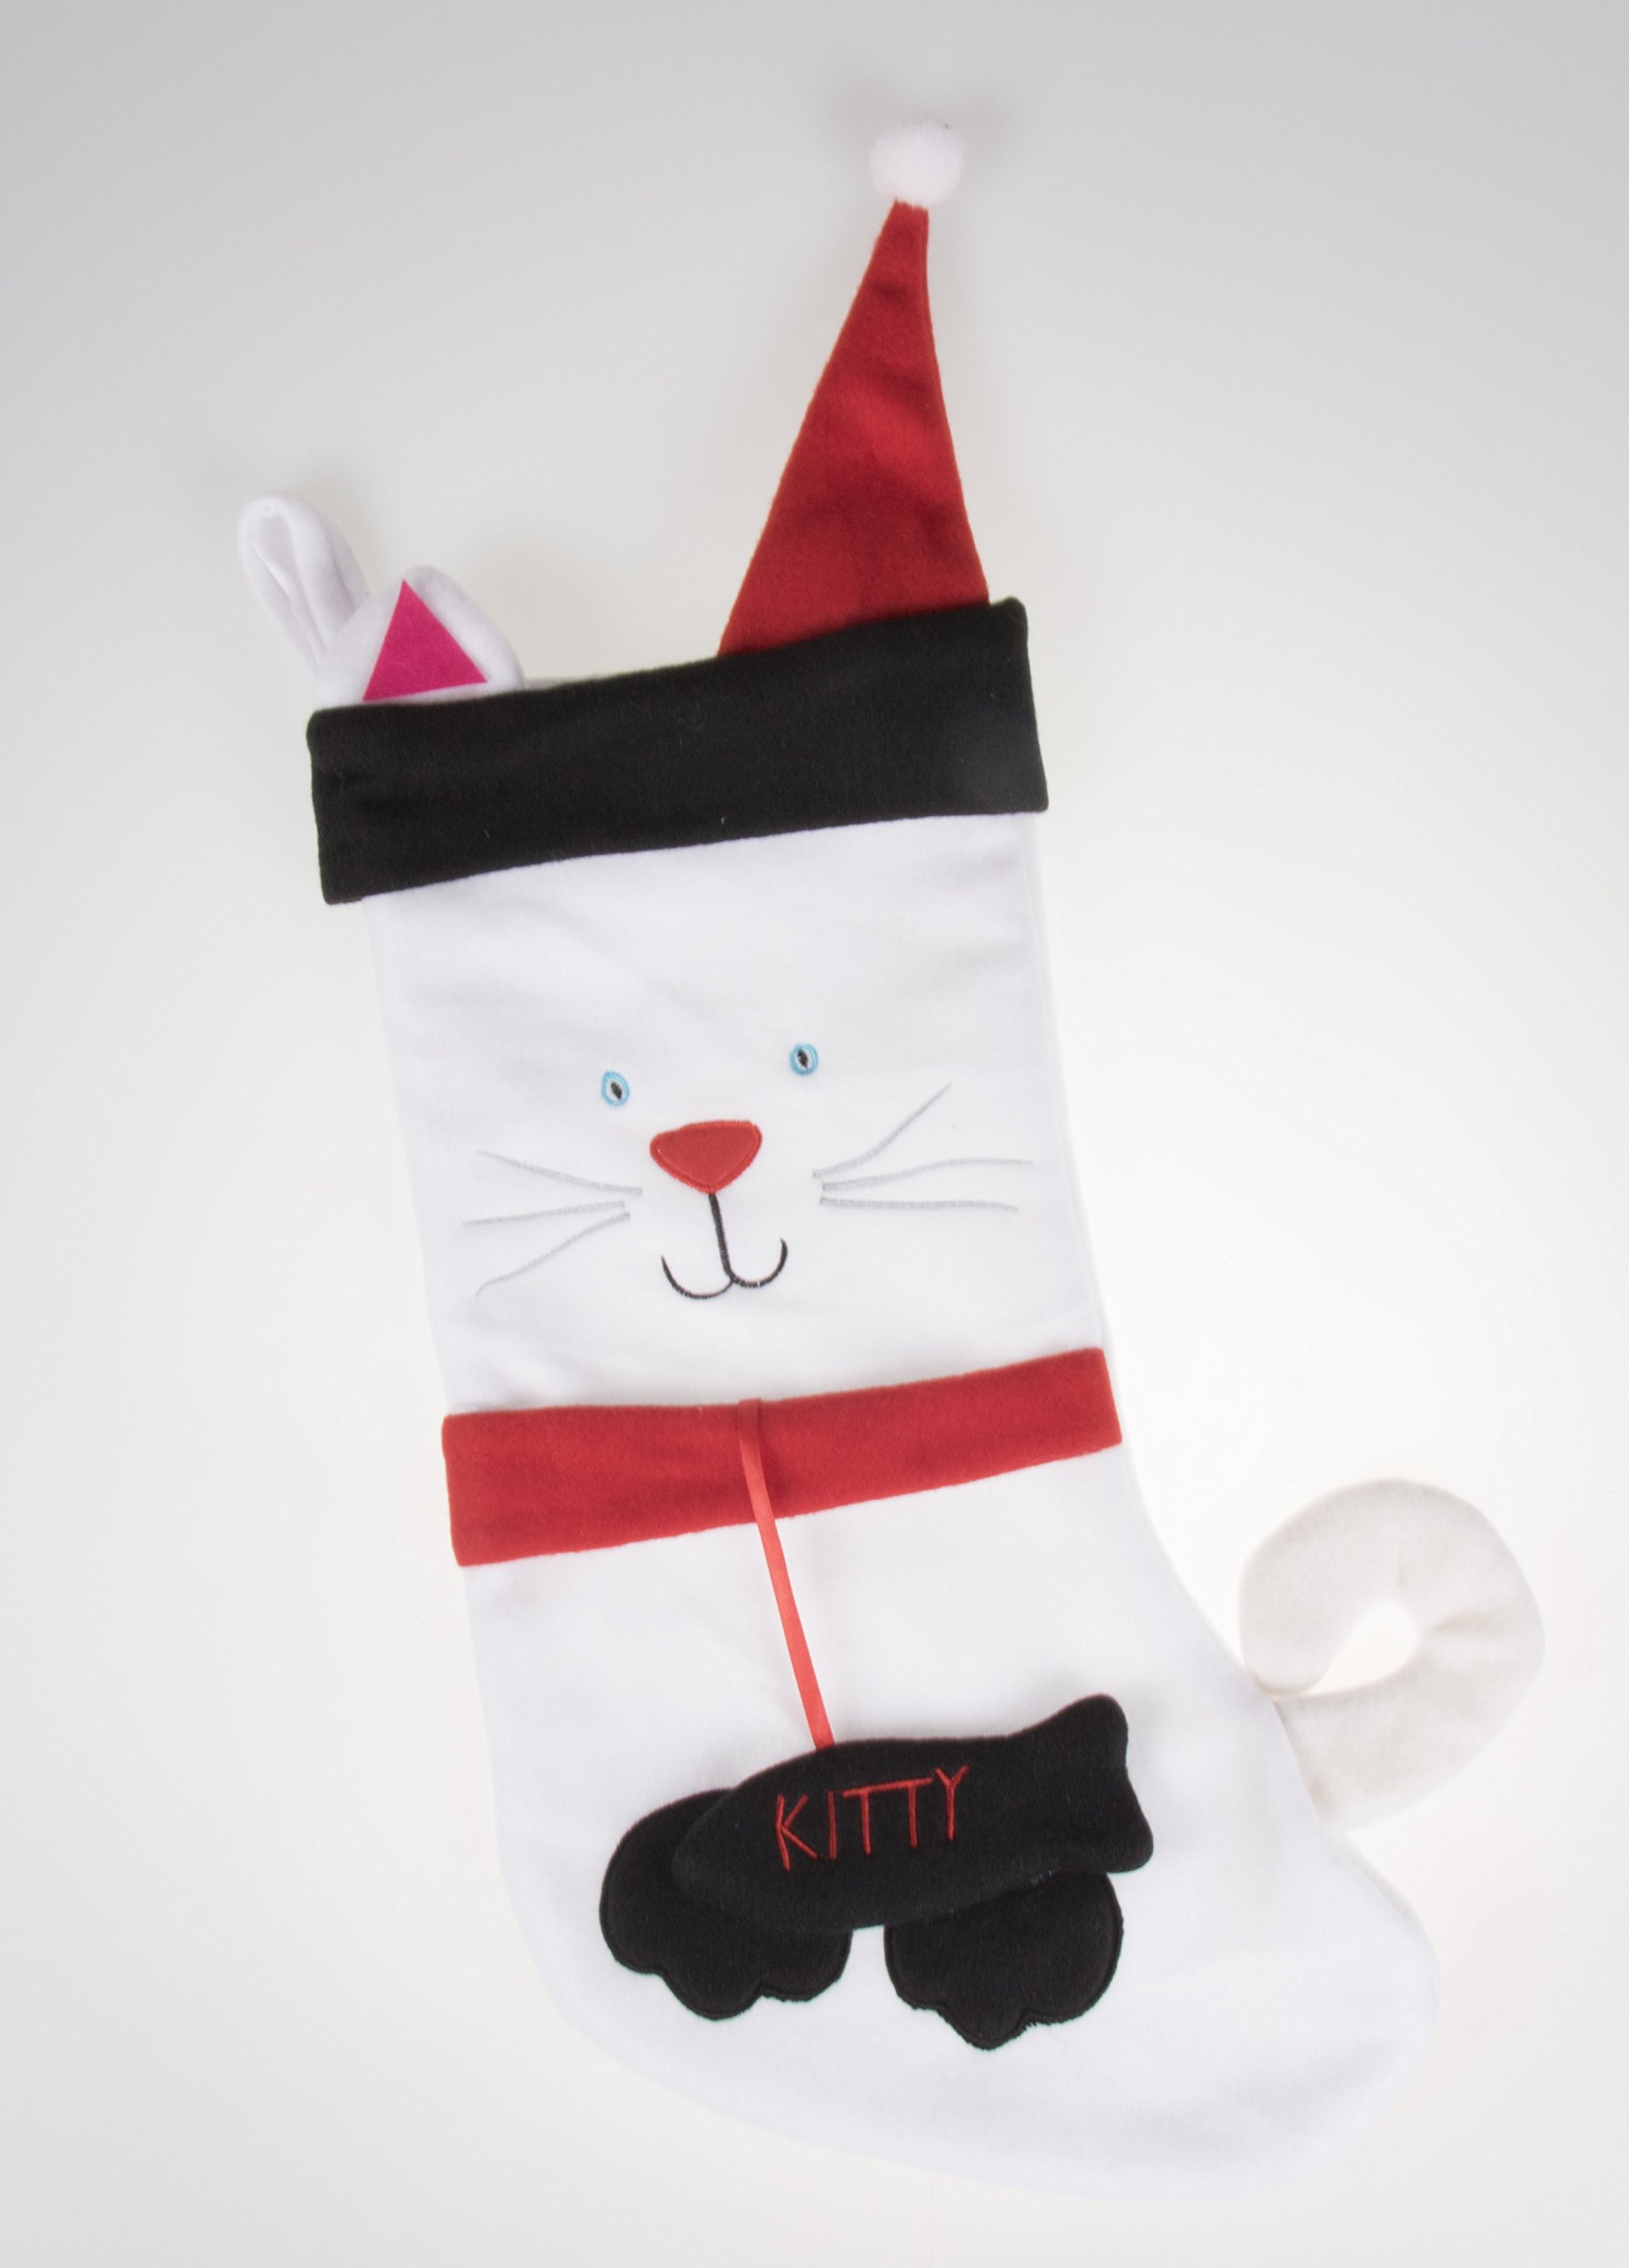 Kitty Cat Soft Plush Cloth Hanging Christmas Stocking | For Kids, Teens, and Adults | White & Black Kitten Holiday Decor Theme | Perfect for Small Gifts, Stocking Stuffers, & Candy | Measures 17'' Tall